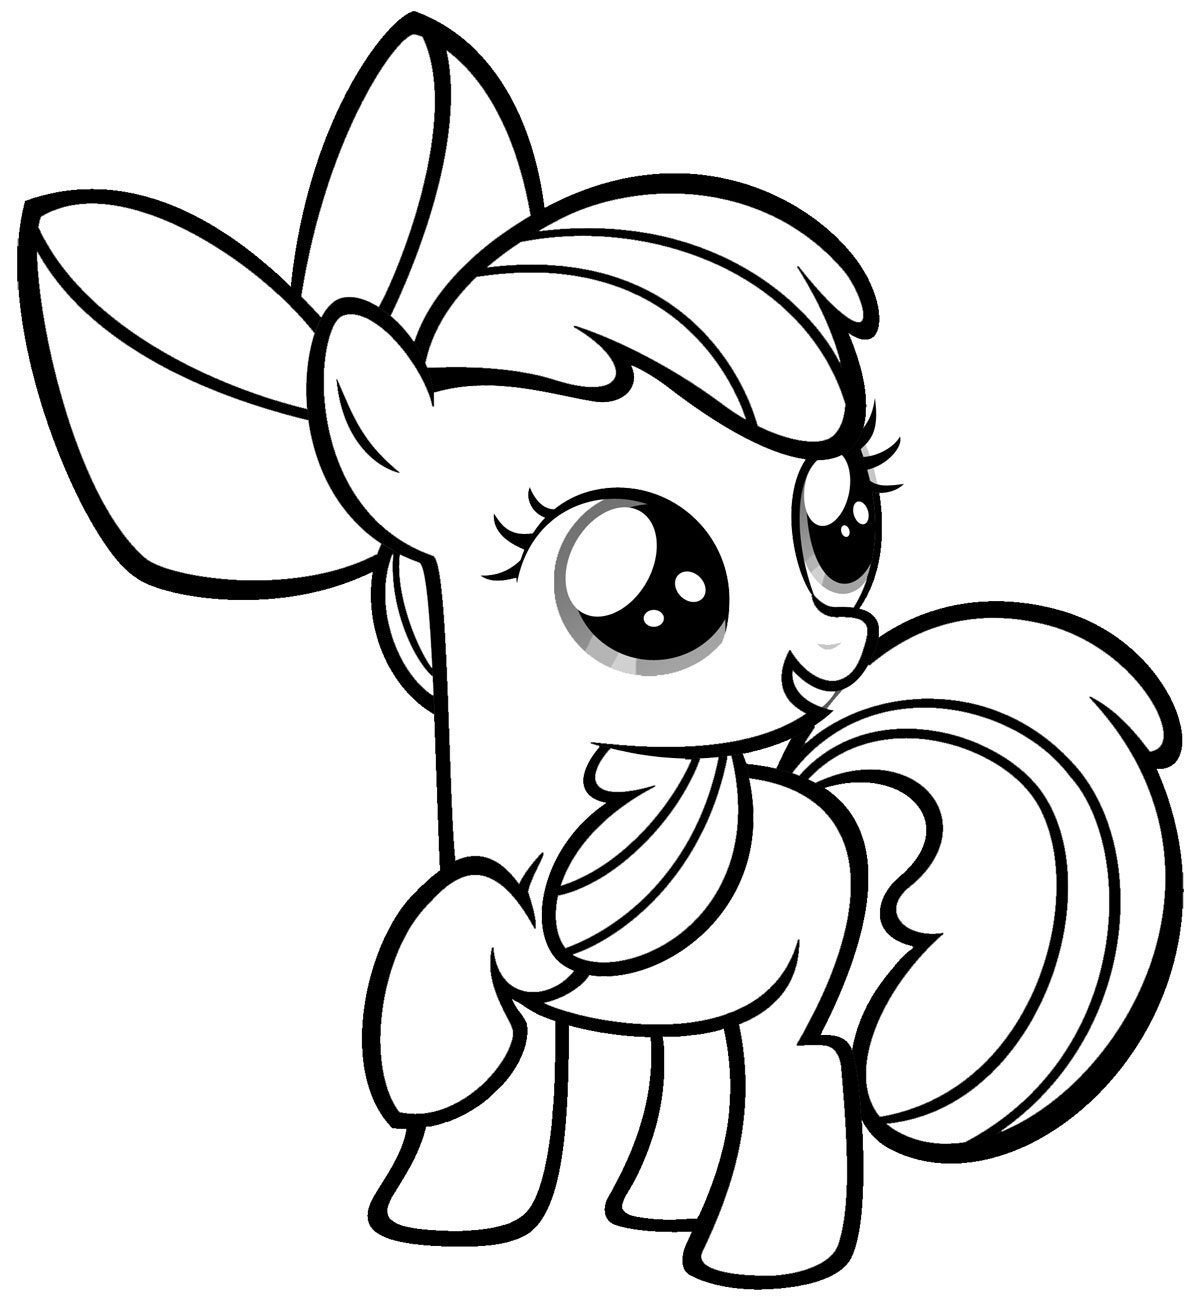 My Little Pony Coloring Pages To Print Impressive Free Printable My Little Pony Coloring Pages For Kids  Coloring Kids Decorating Design